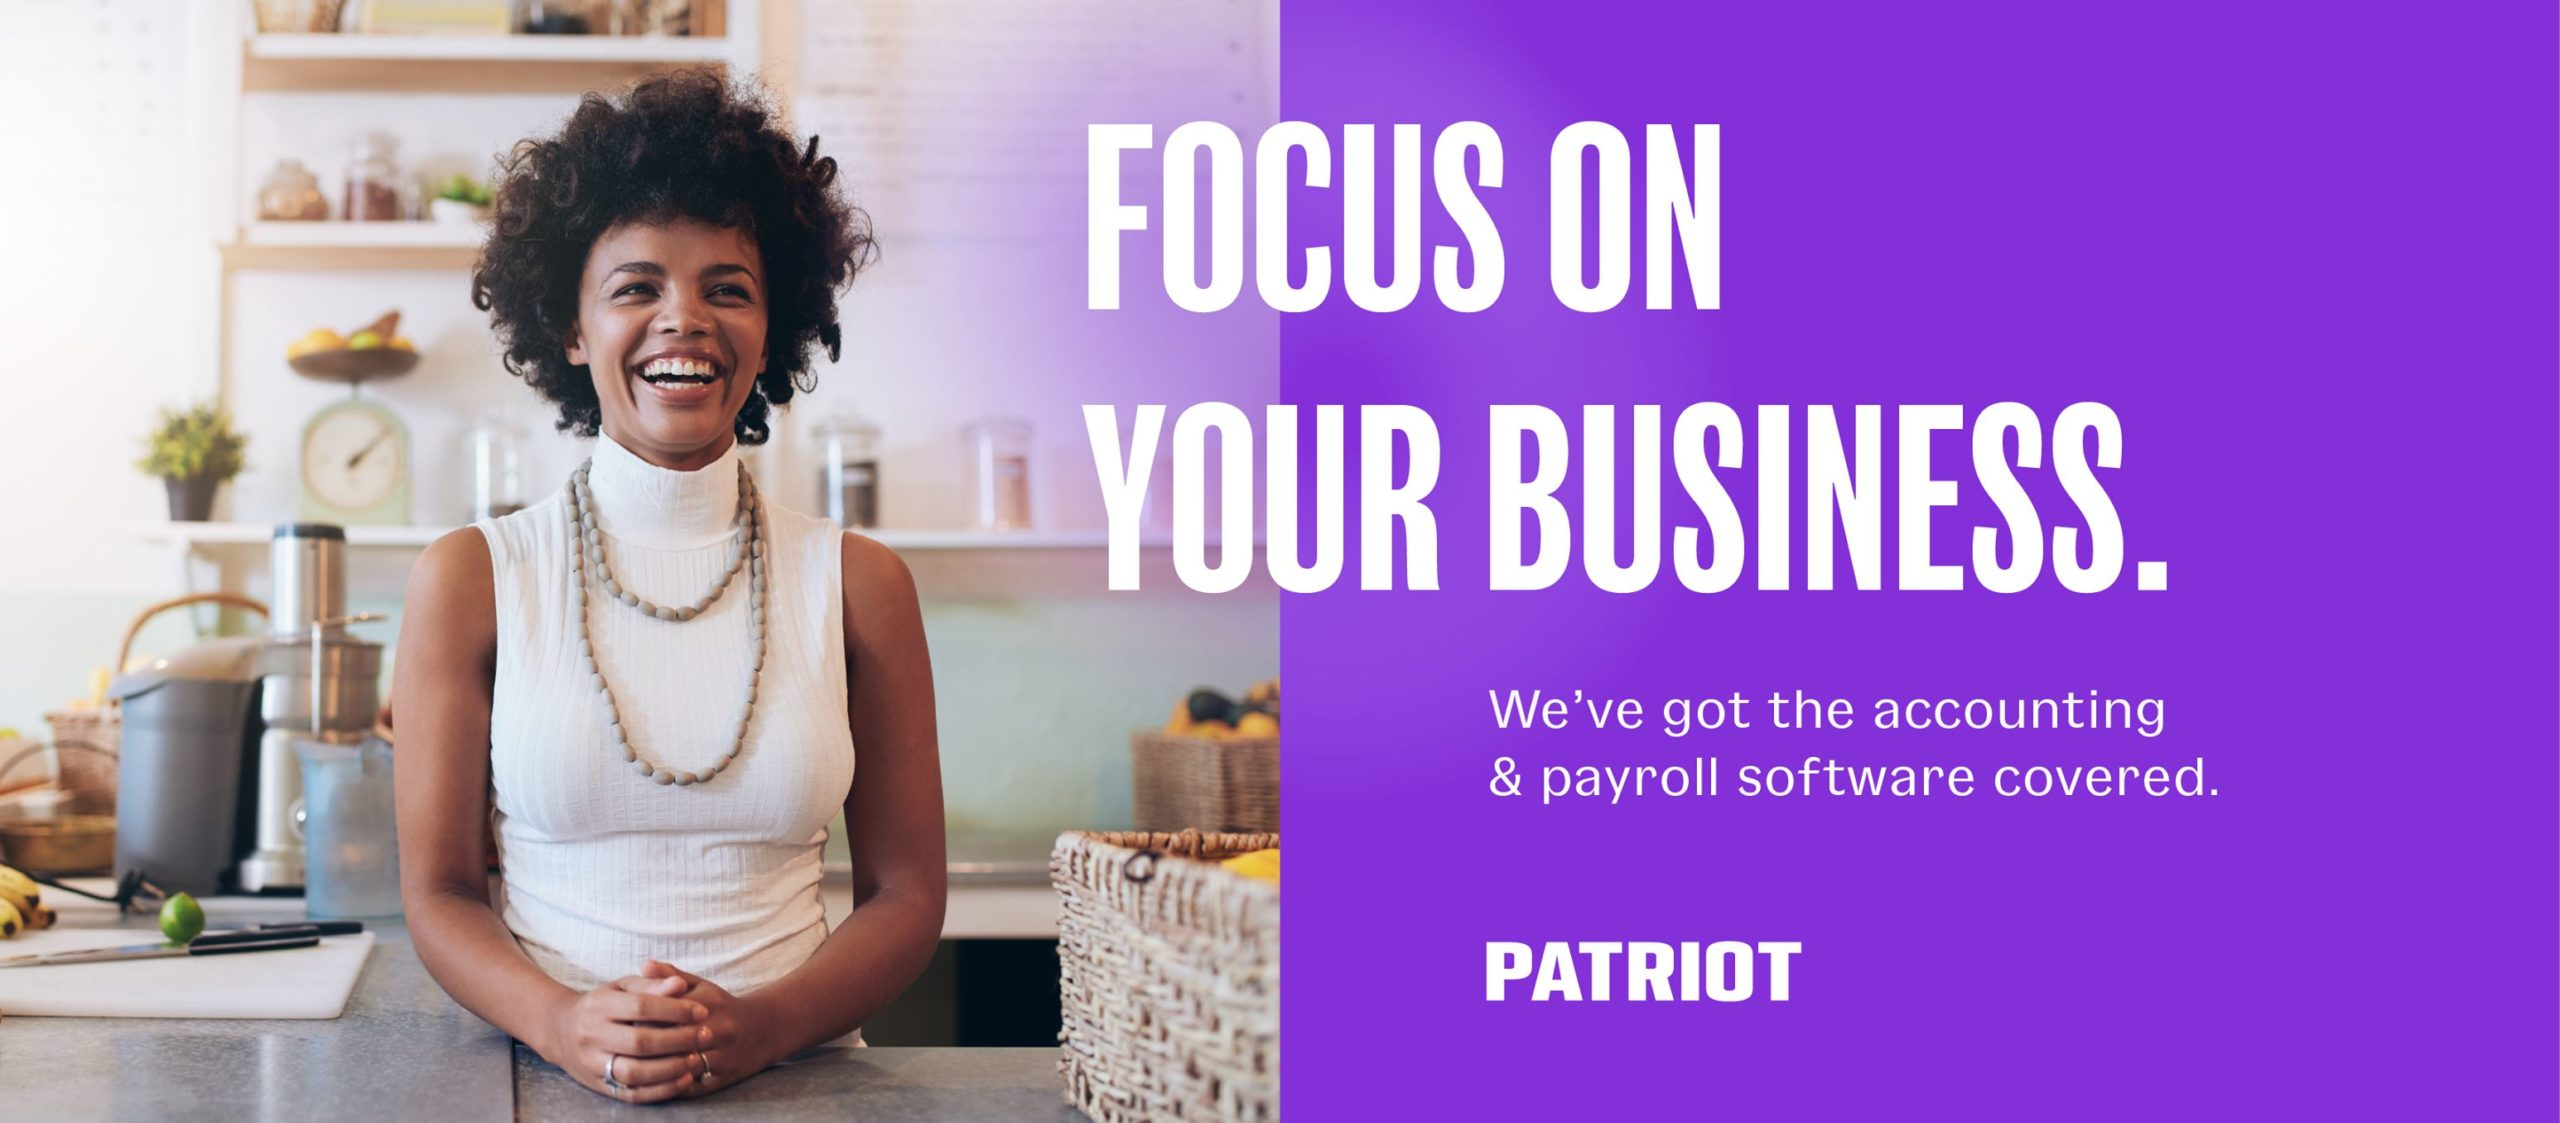 Patriot Premium Accounting Premium Software - Unlock all the accounting features you need to take complete control of your money with Patriot